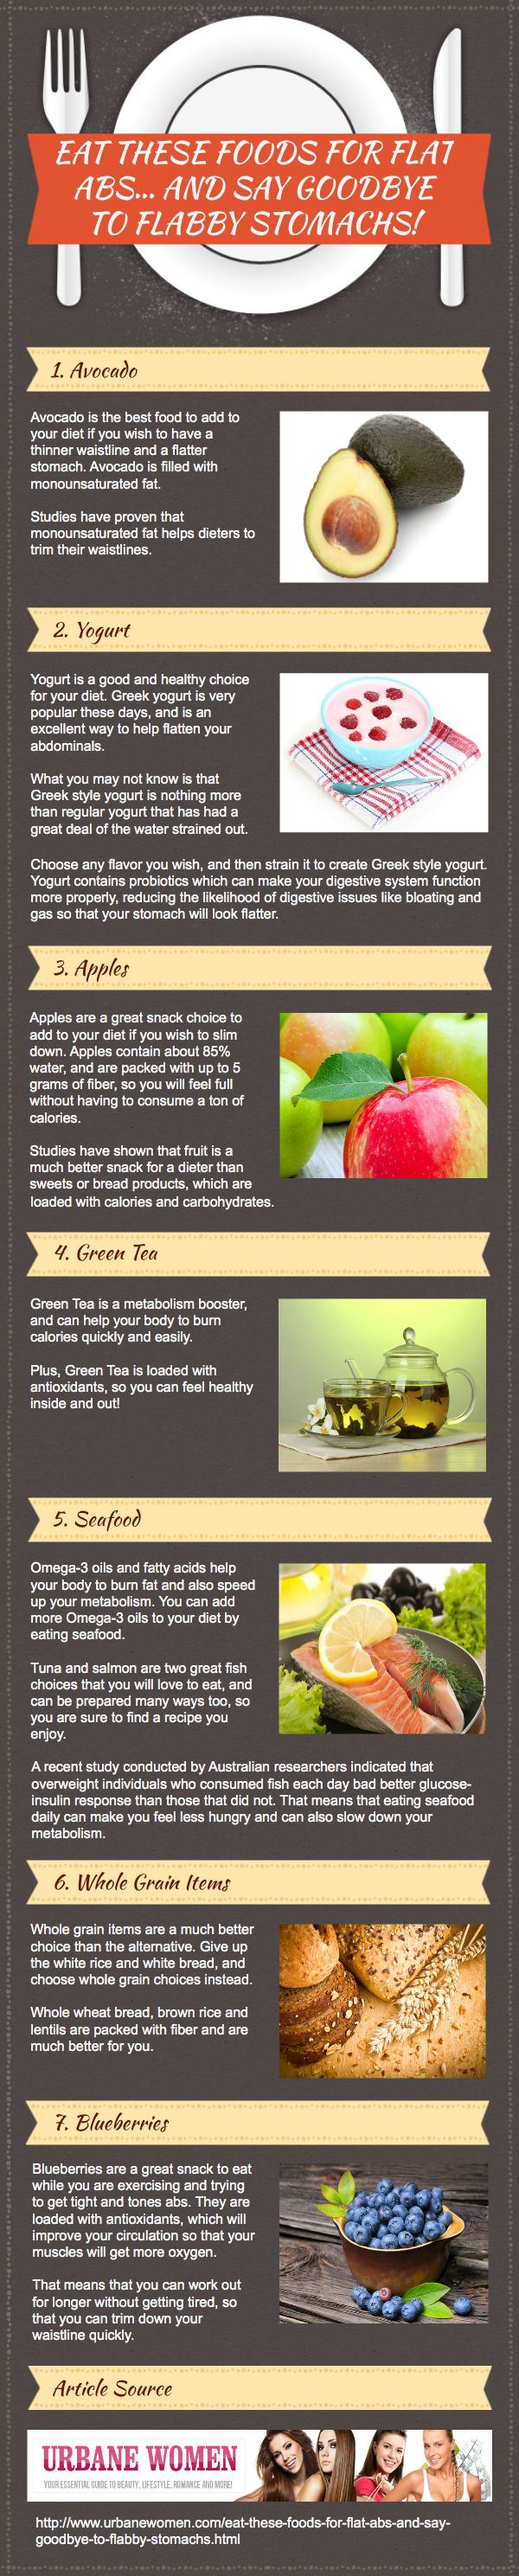 Eat These Foods For Flat Abs… And Say Goodbye To Flabby Stomachs! [Infographic]